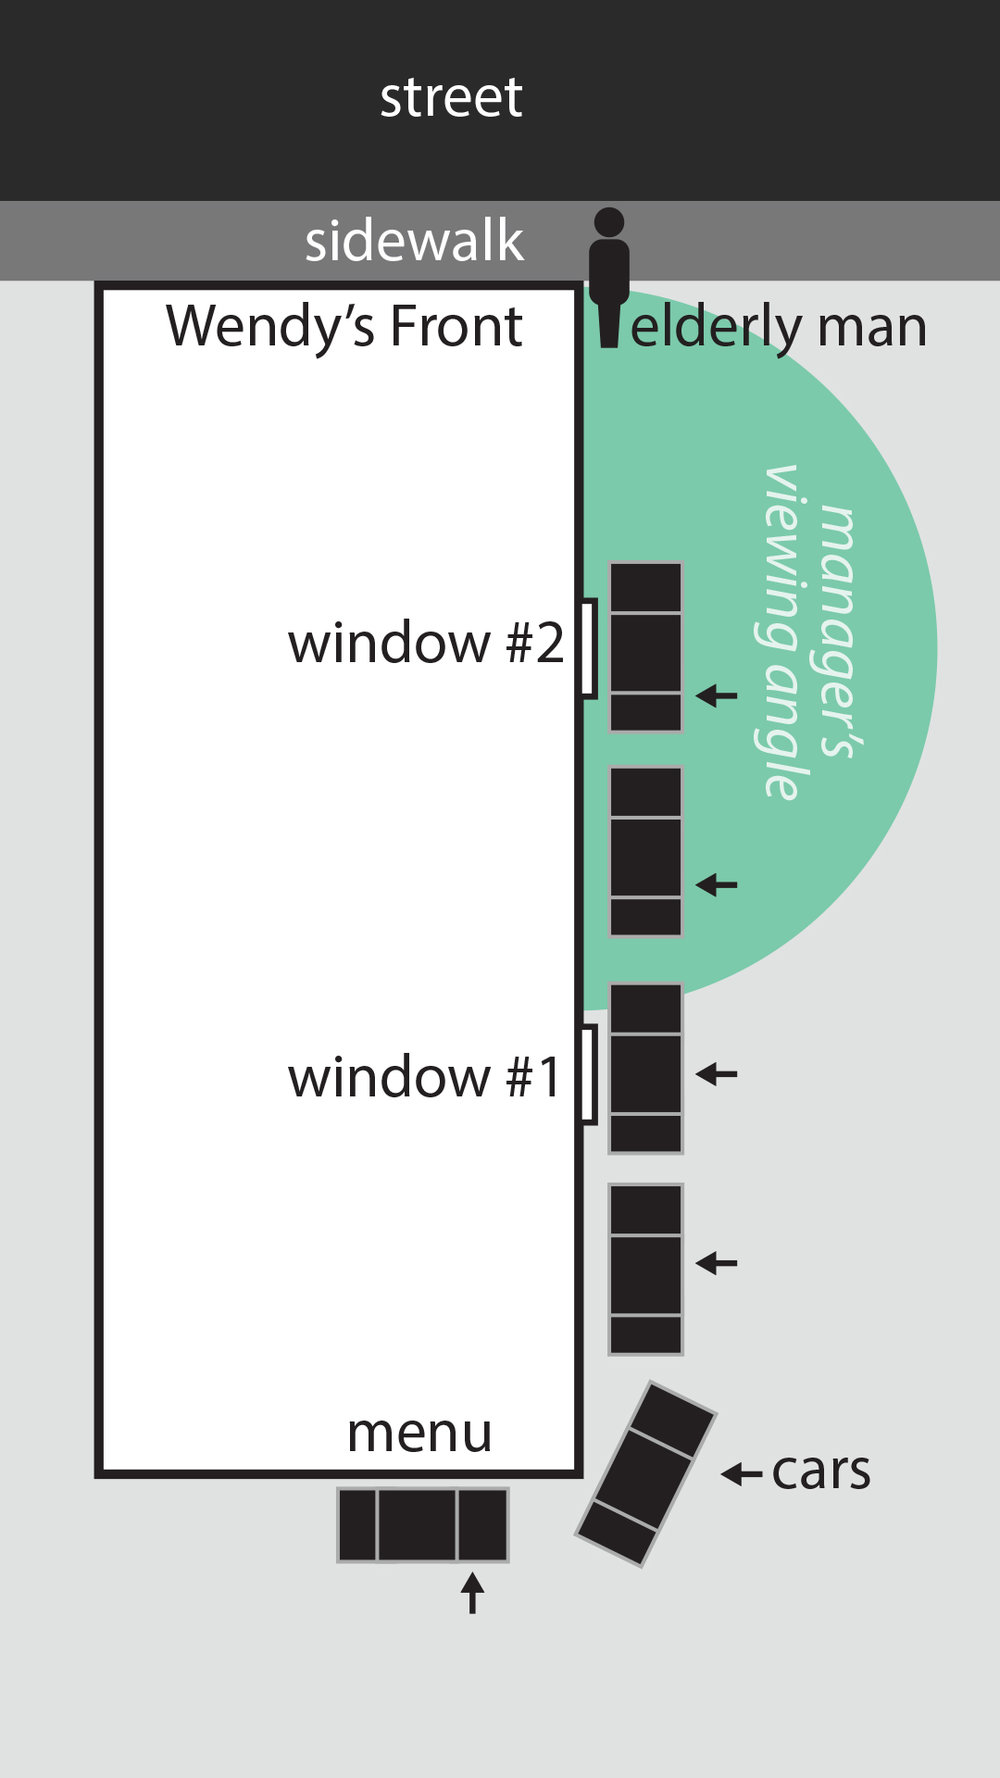 Diagram of the Manager's Point of View. Windows Protrude from building.